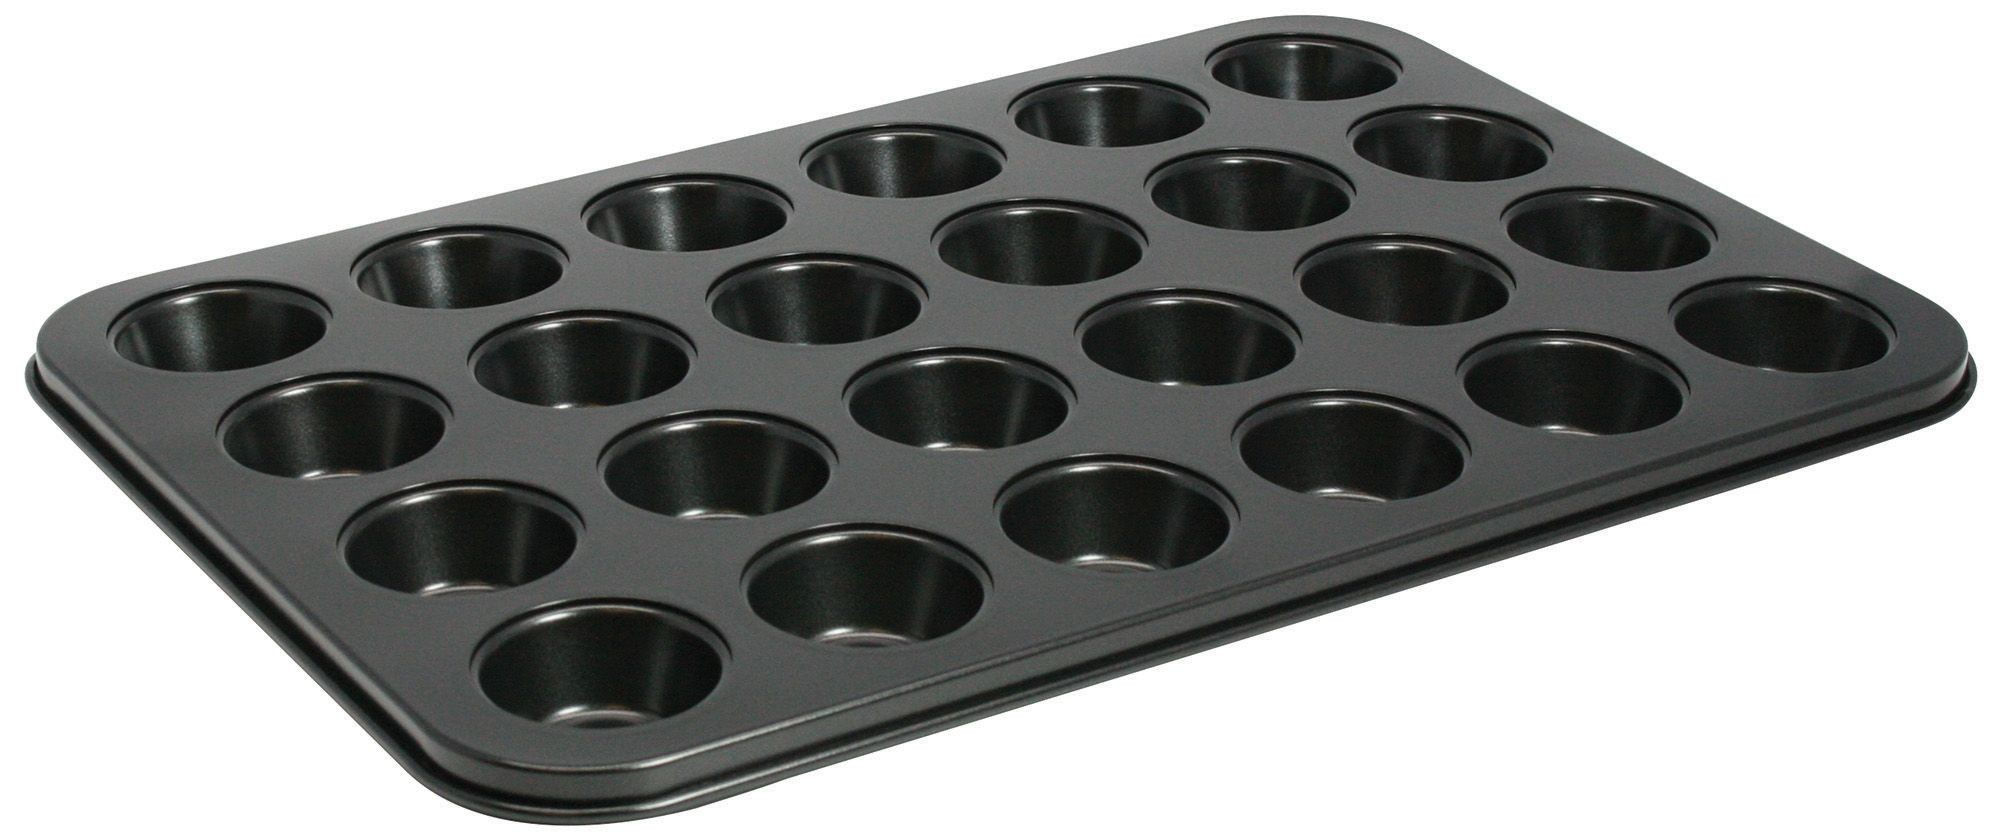 Non-Stick Aluminum 24-Compartment Mini Muffin Pan, 13-3/4